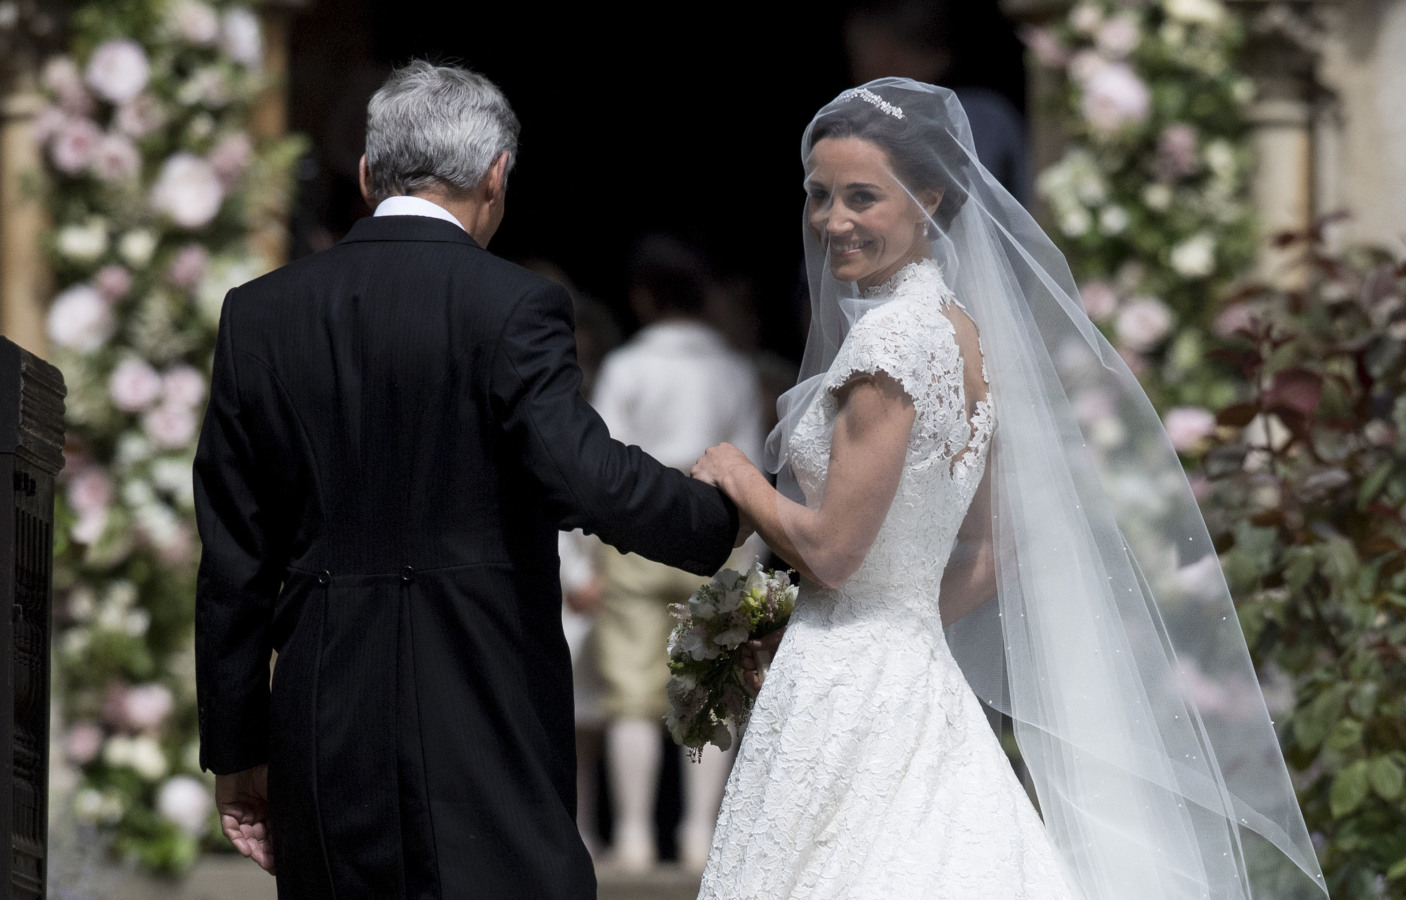 Pippa Middleton and father at her wedding